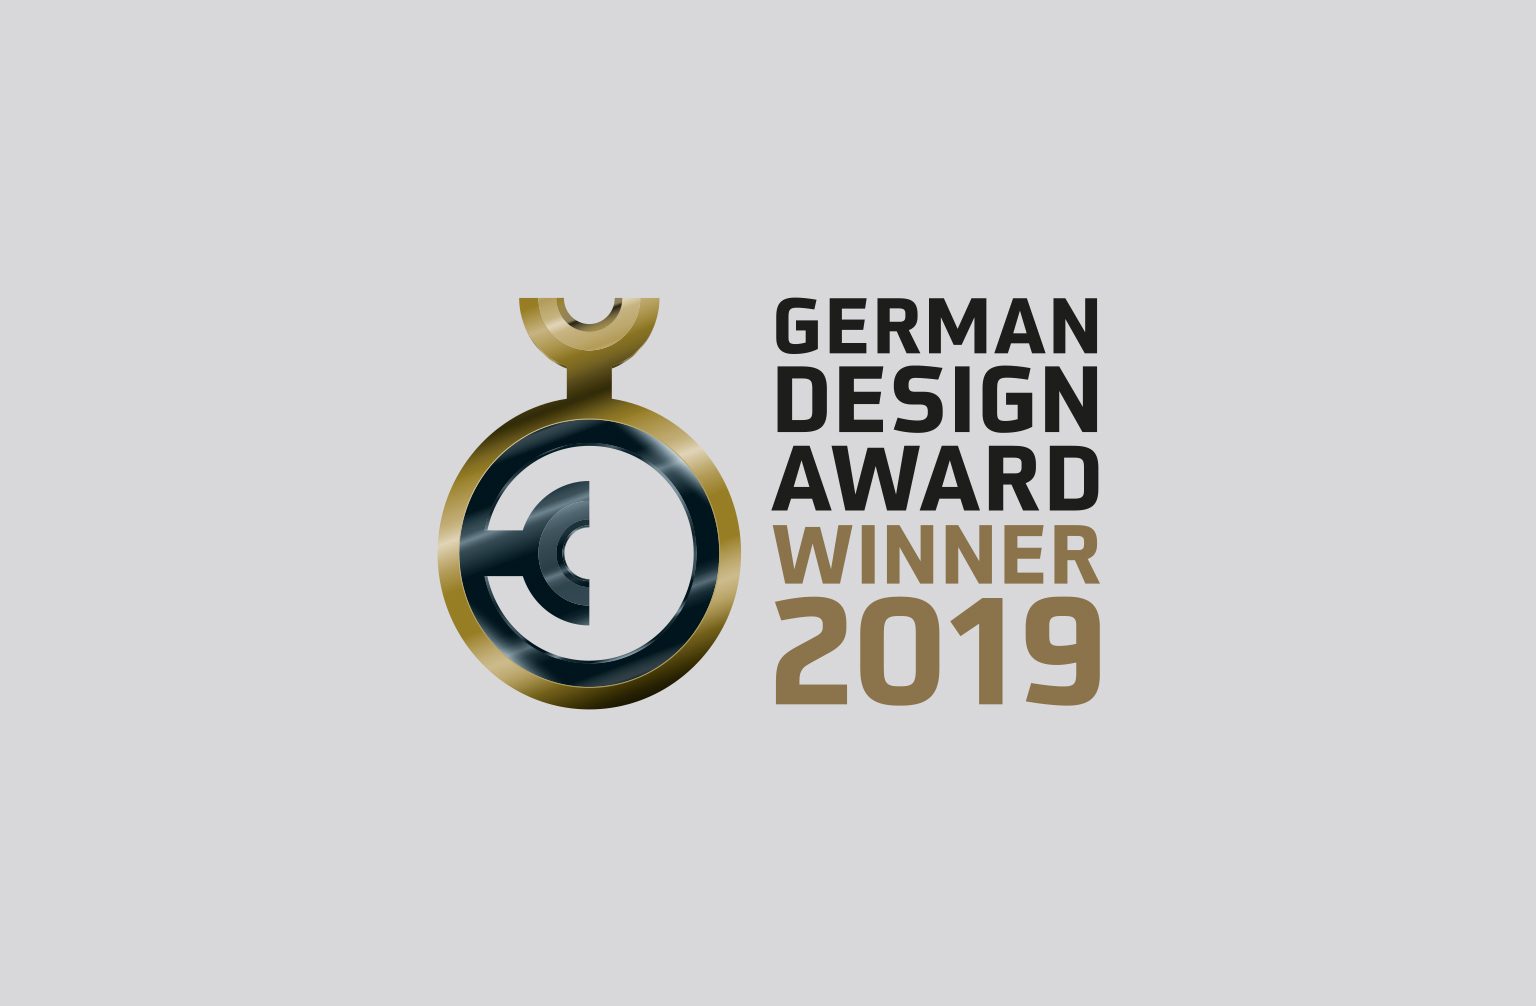 From Germany with distinction: the German Design Award!